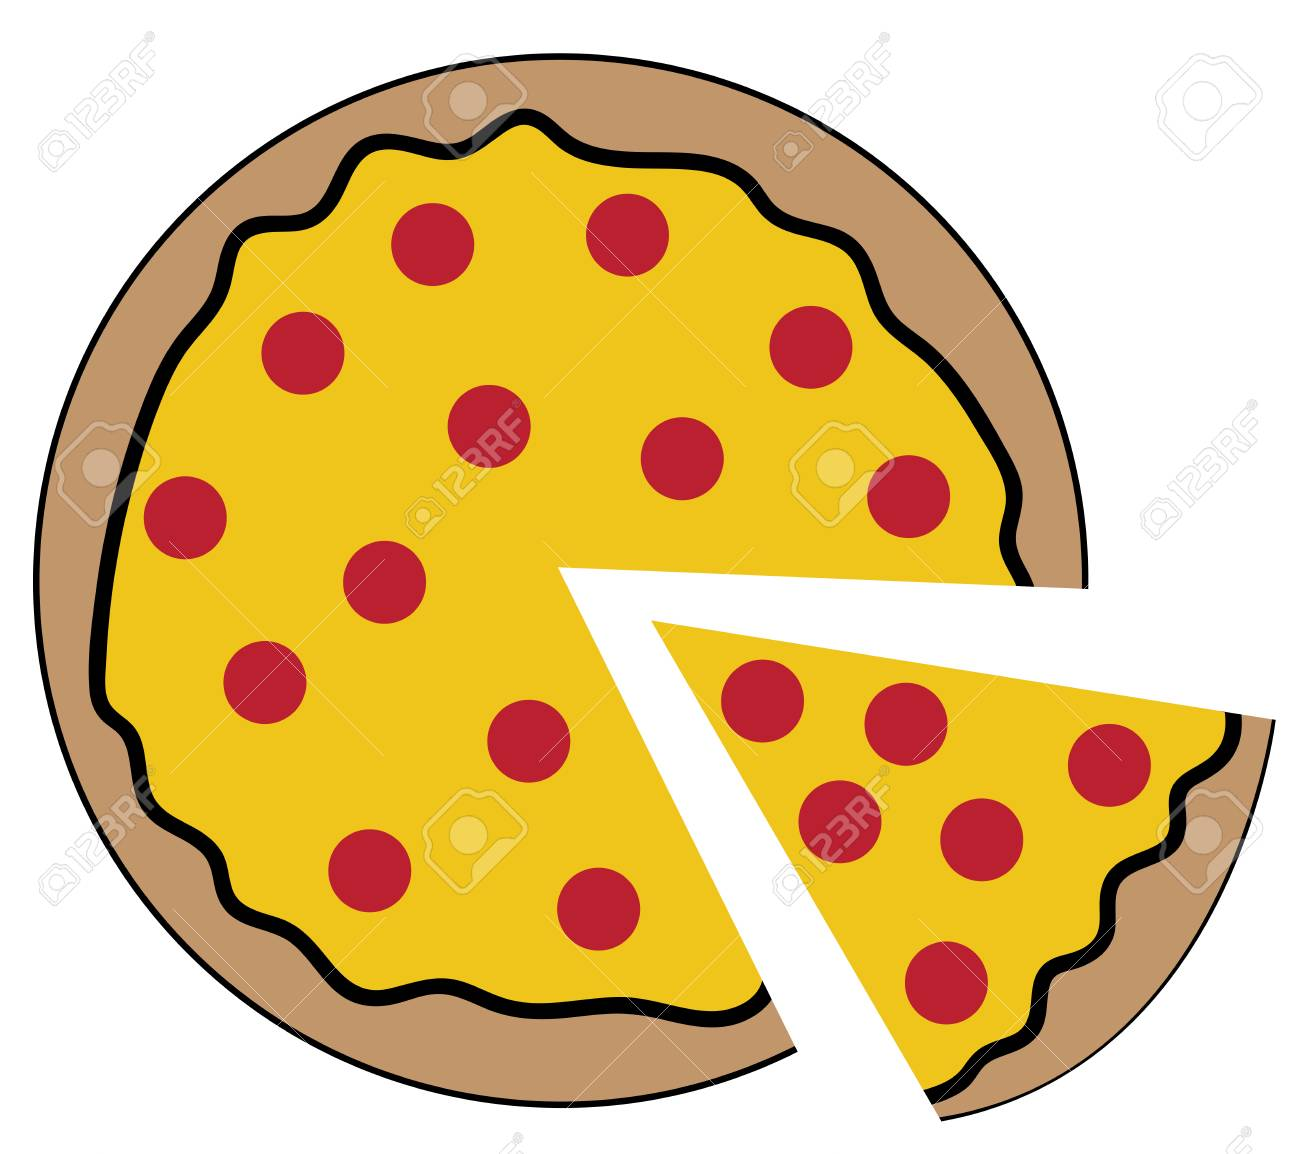 pepperoni pizza in cartoon illustration royalty free cliparts rh 123rf com  pepperoni pizza clipart free